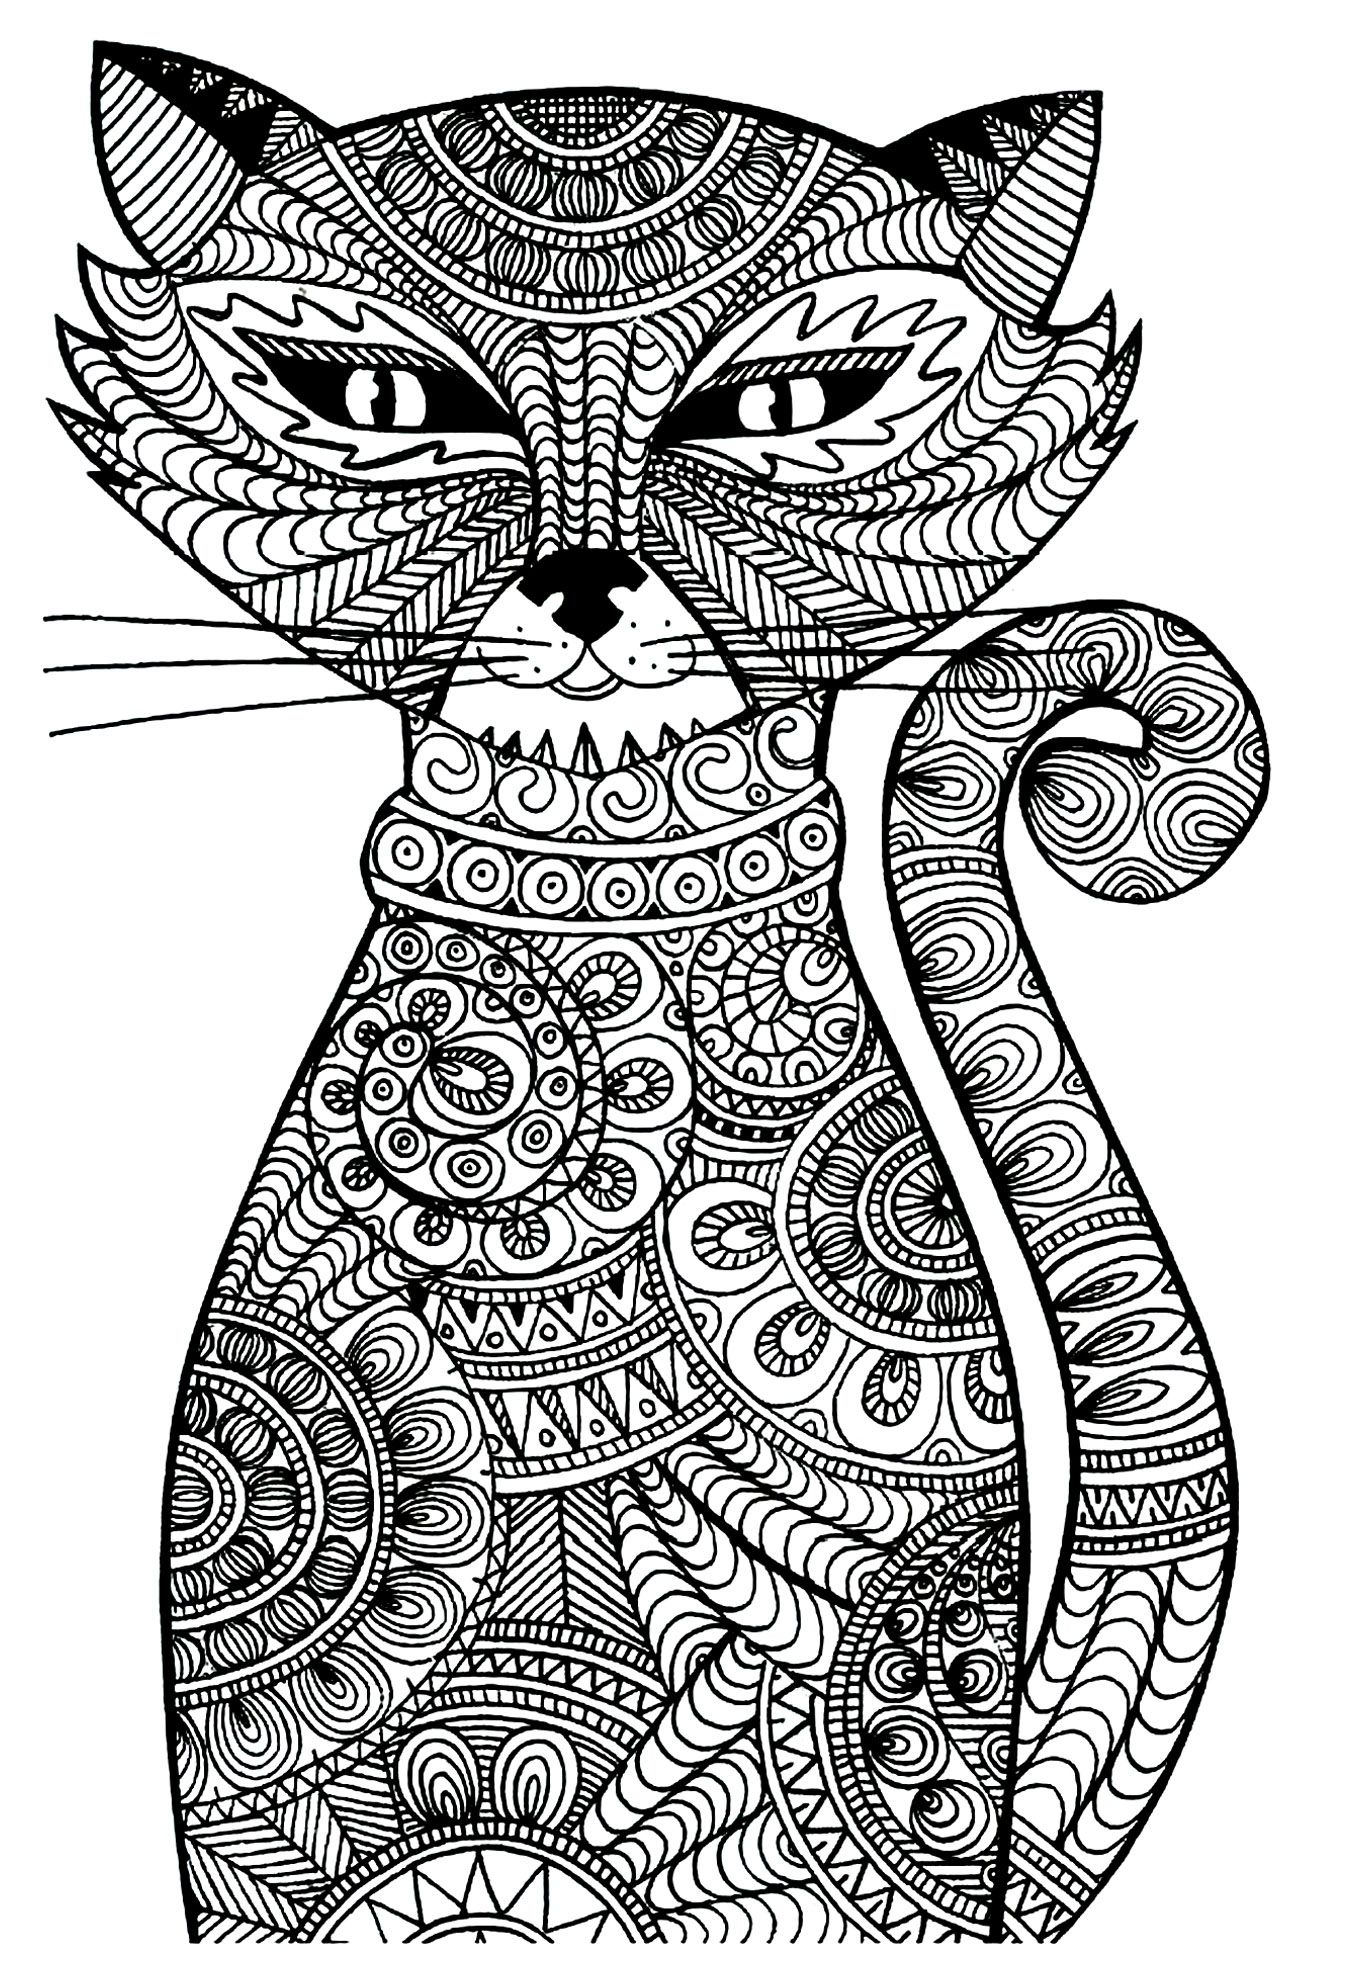 Awesome Animals  A Stress Management Coloring Book For Adults